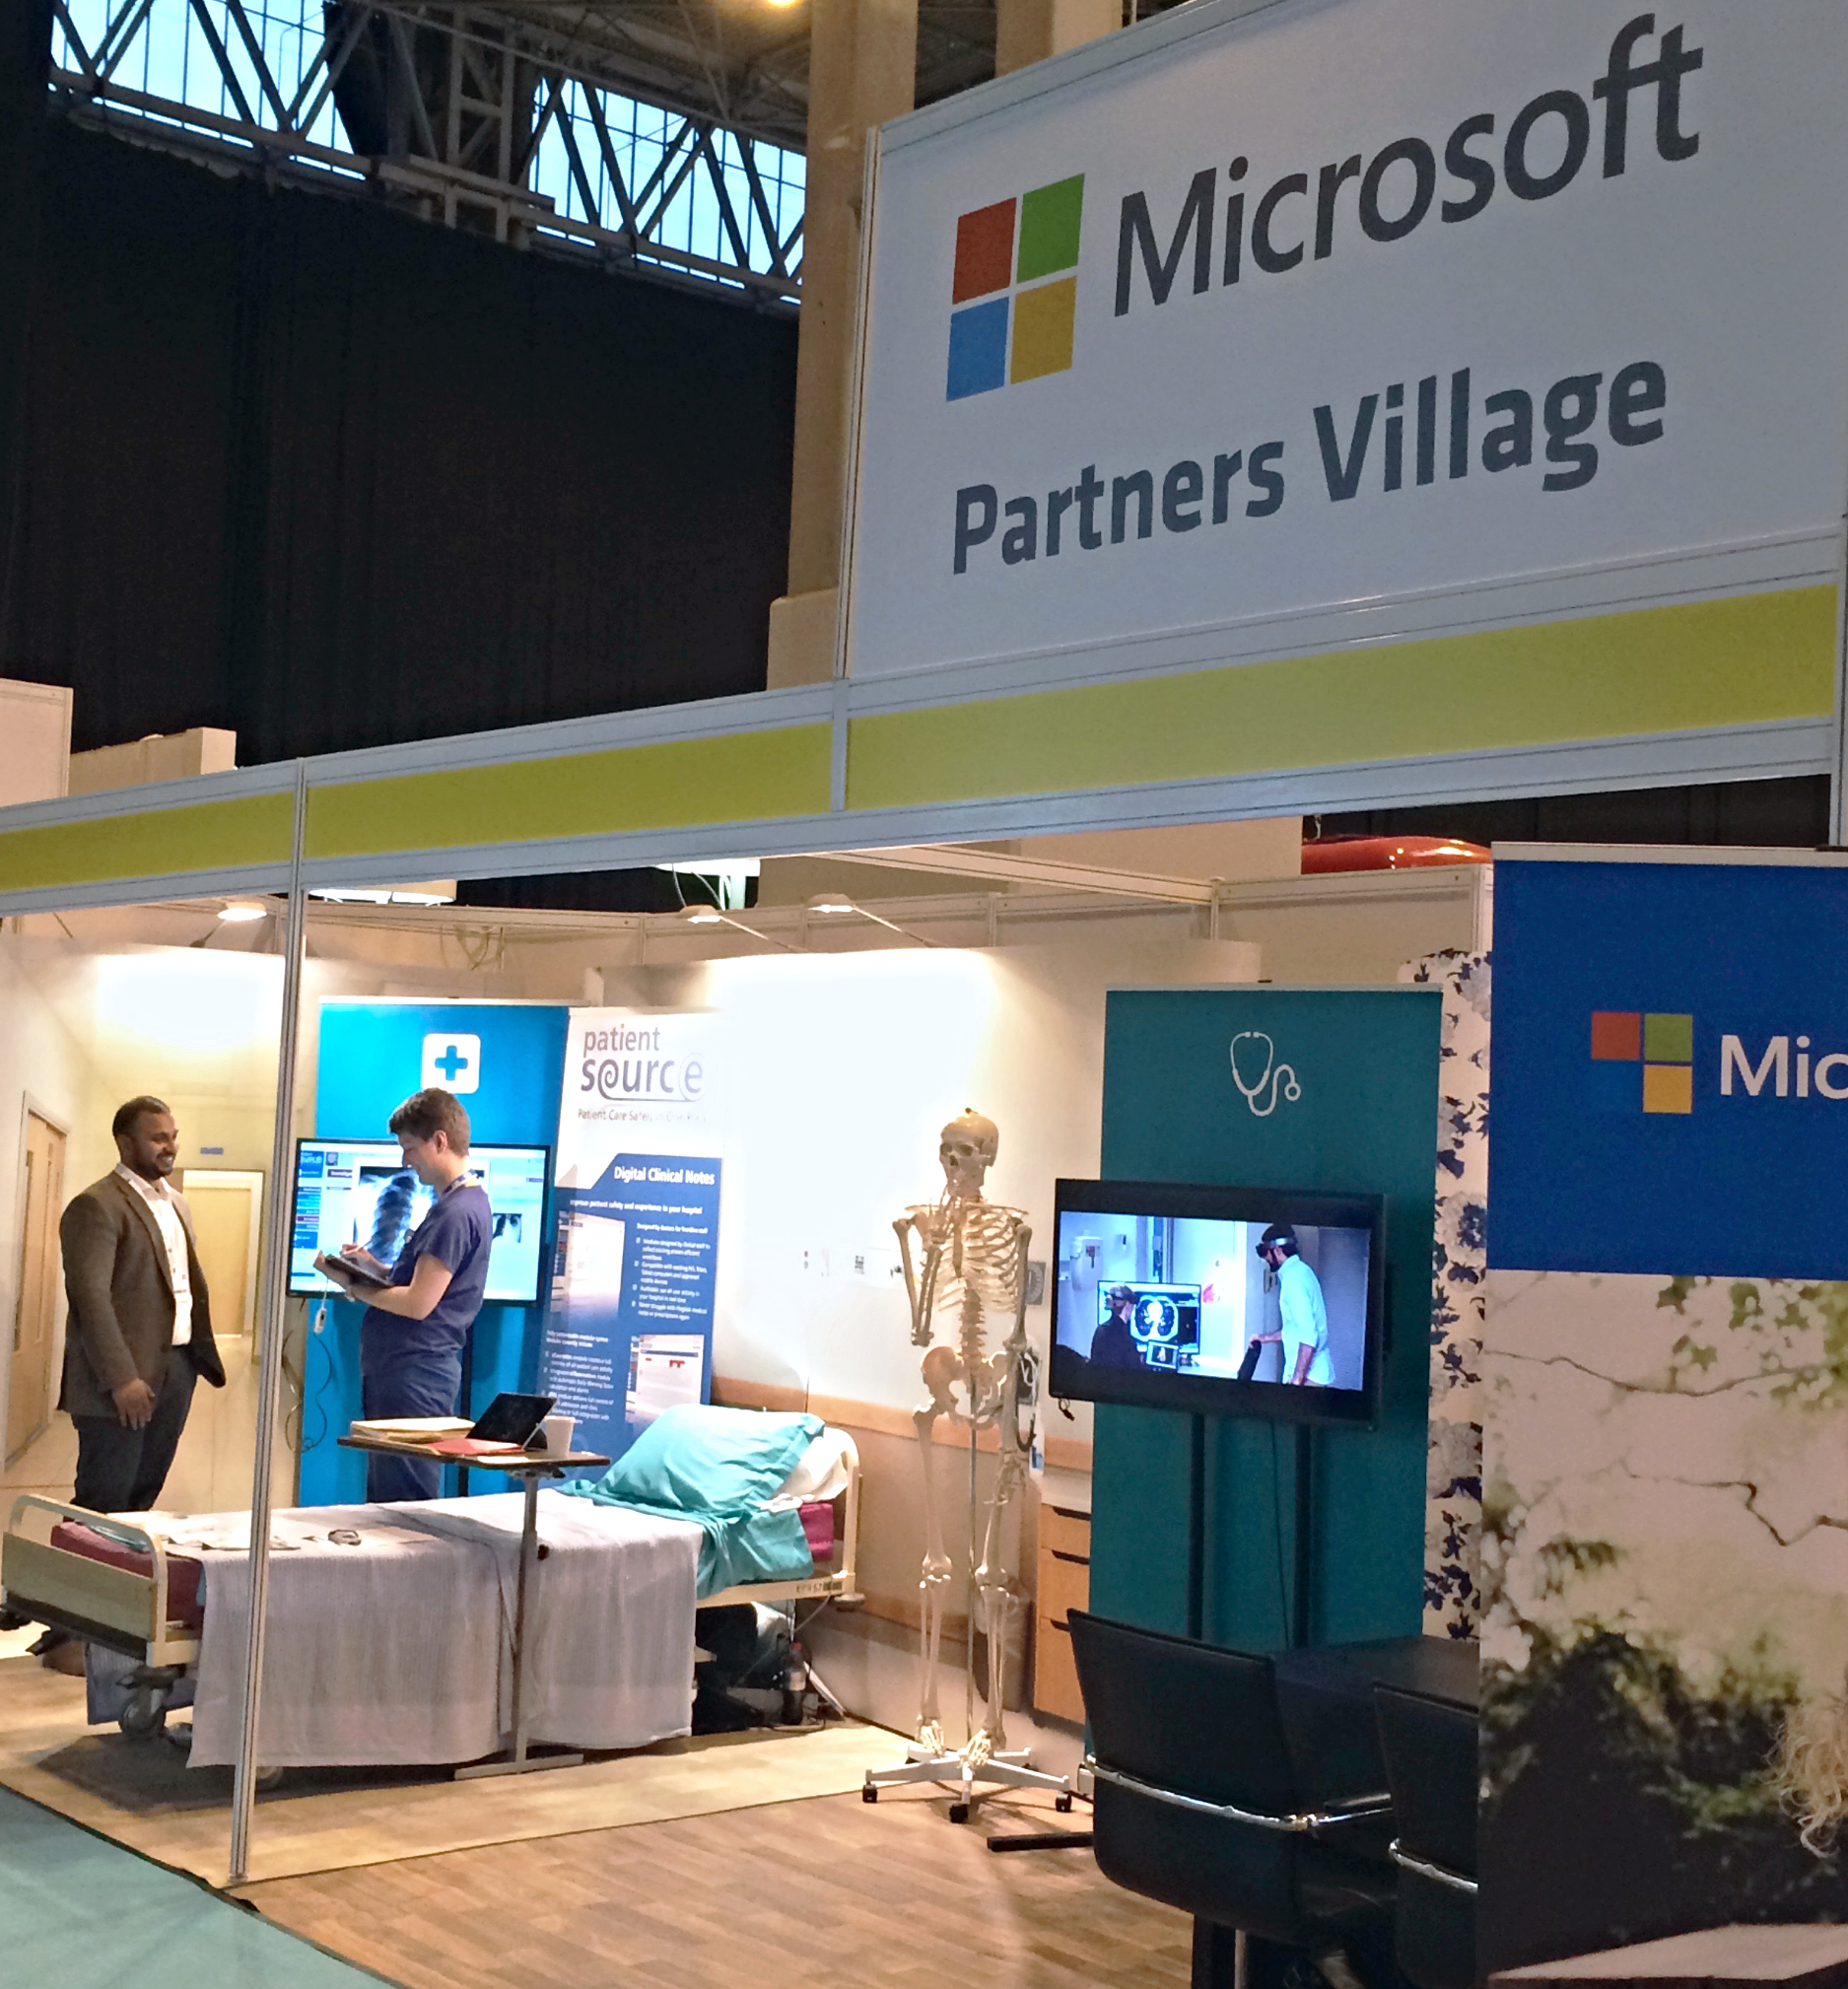 PatientSource in the Microsoft Partners' Village at EHI Live 2015